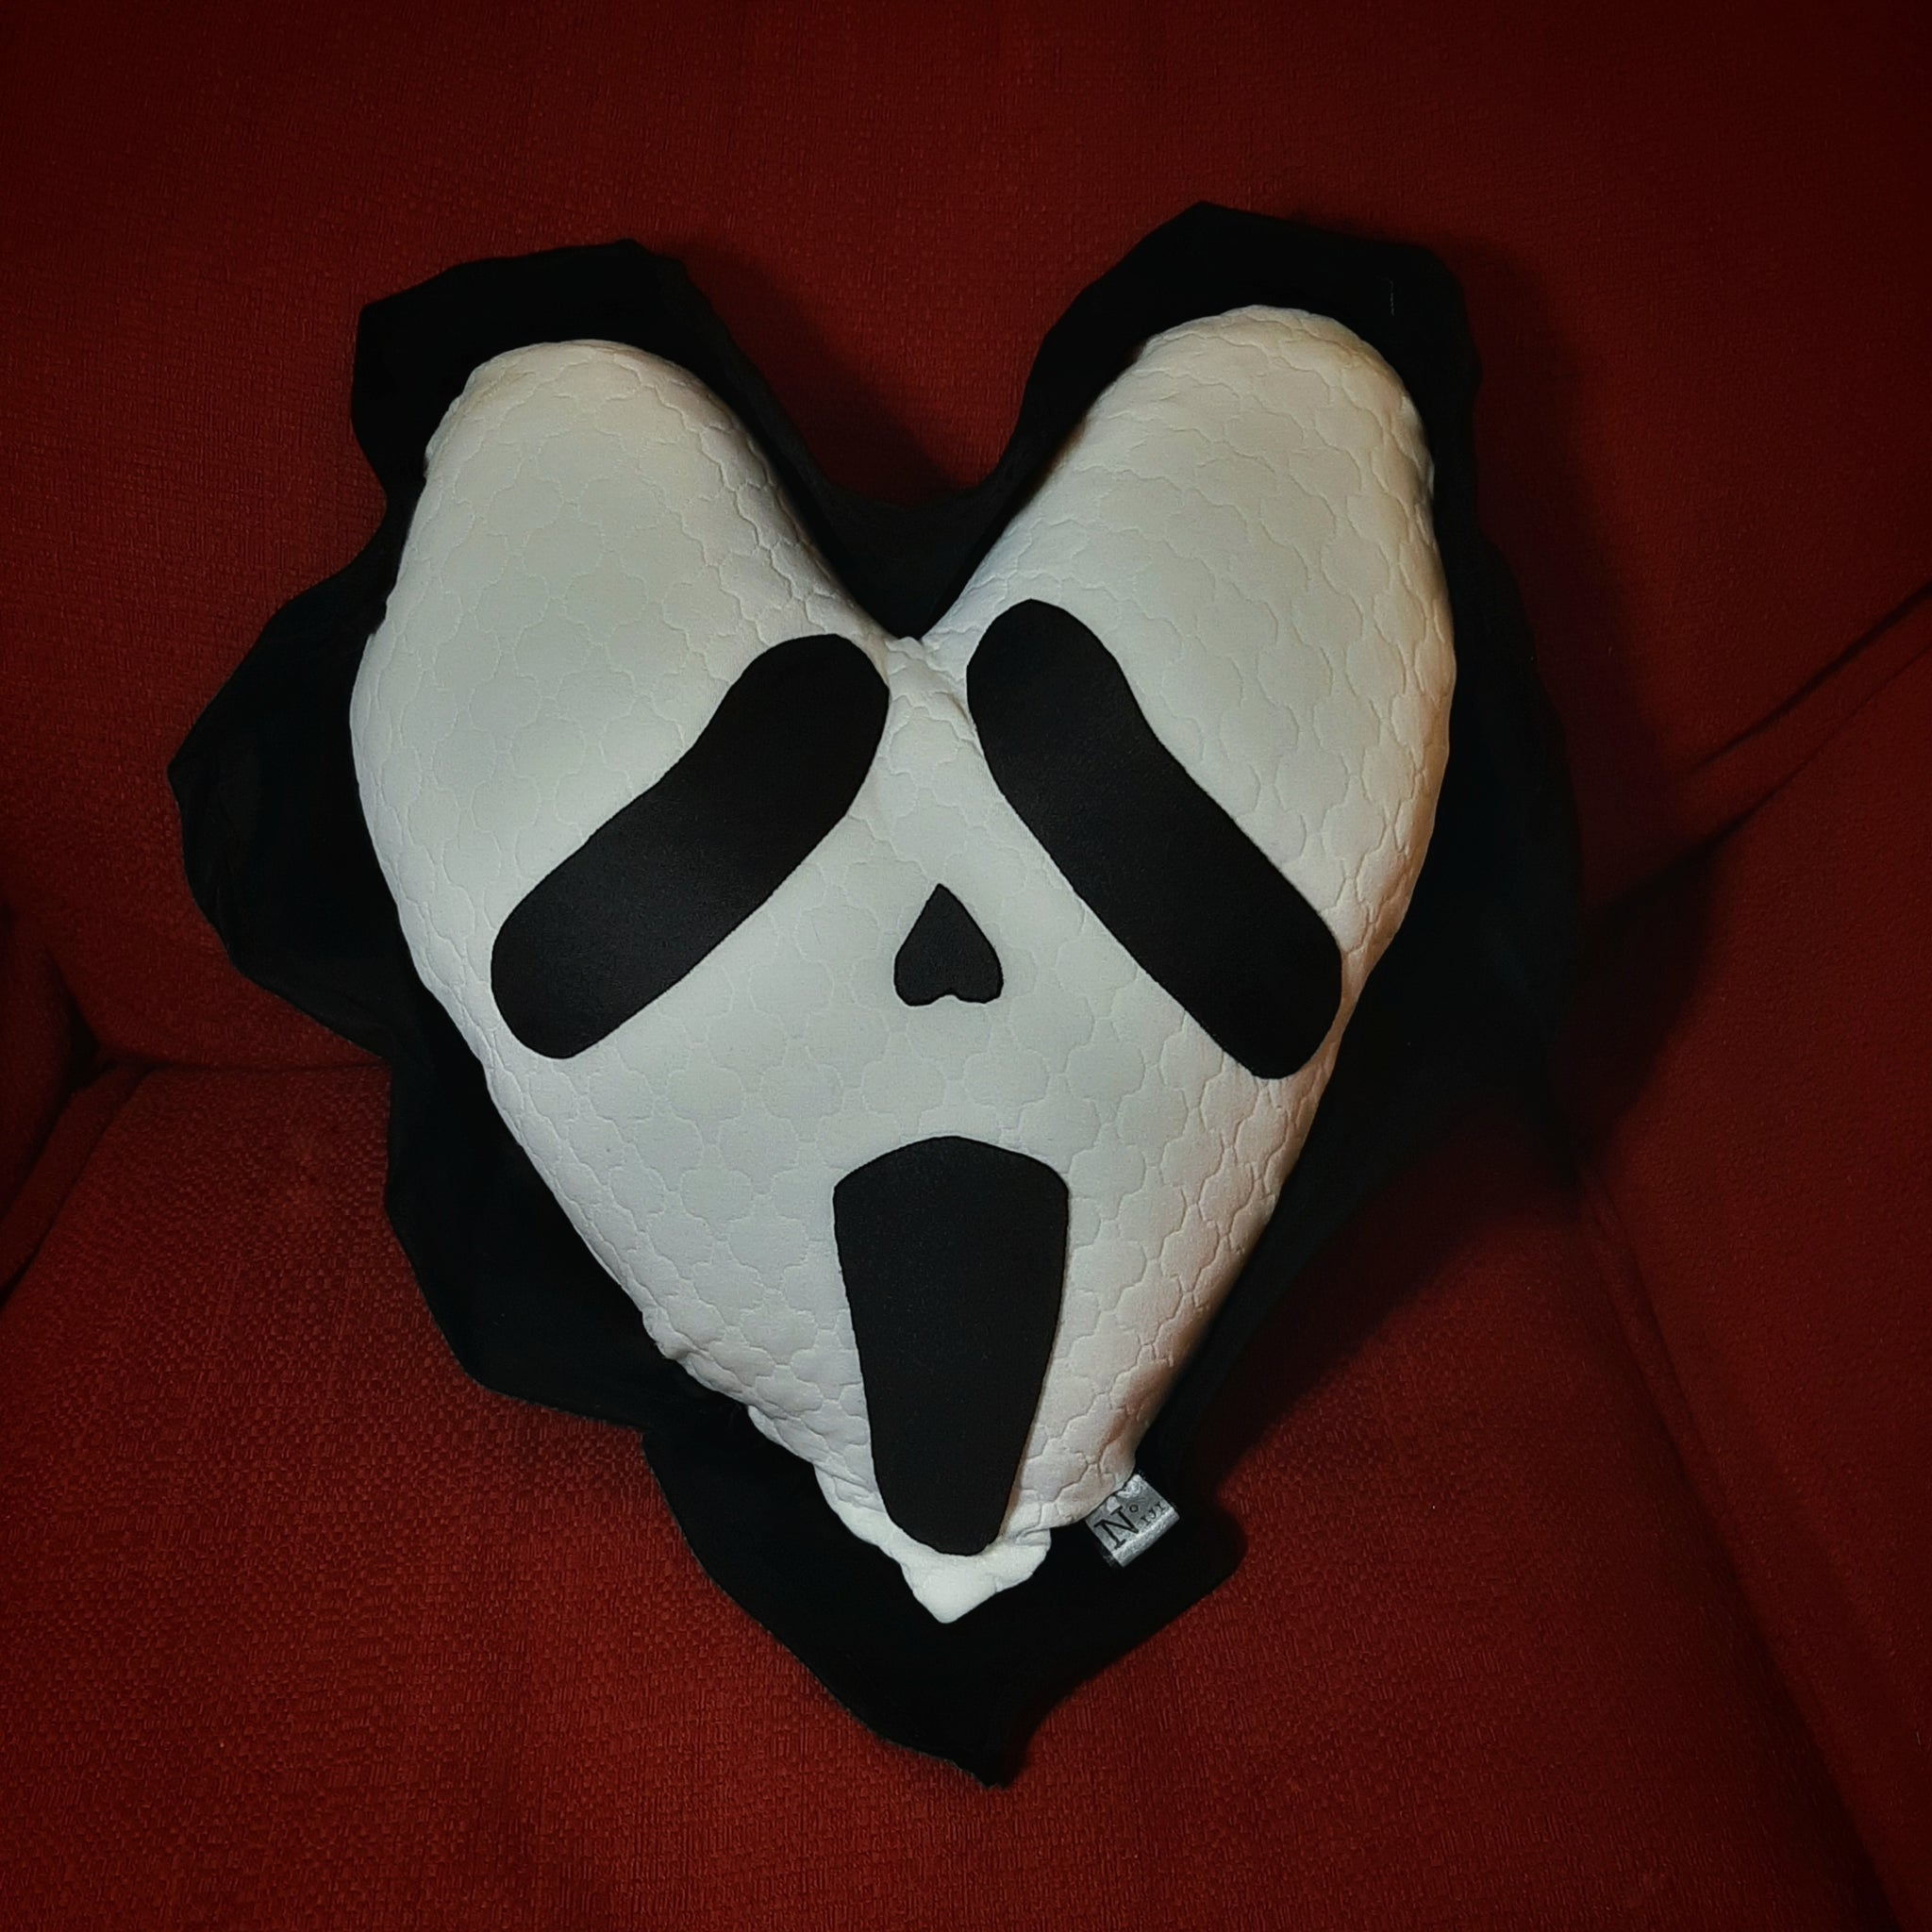 Ghostface cushion